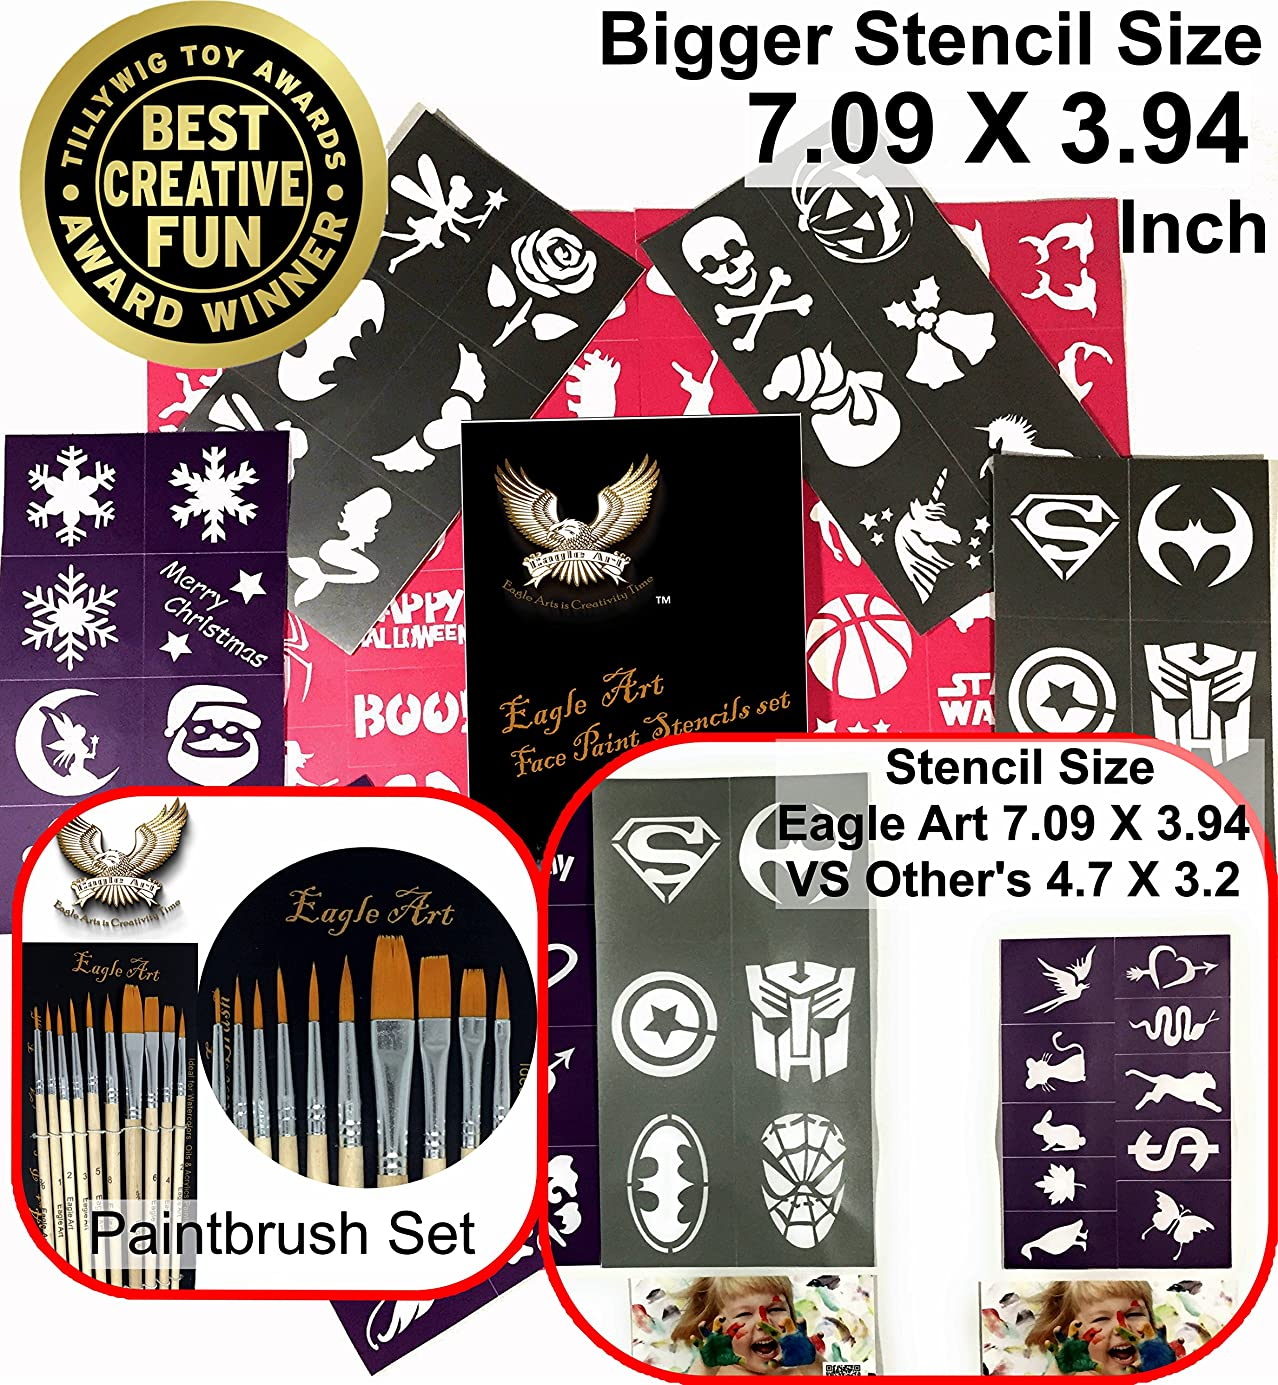 Face Paint Stencil & Paint Brush Set By Eagle Art (1 Stencil Set & 1 Artist Brush Set) | X-large 2x2.4, Large 2x1.8, Medium 2x1.4 (Inches) Size Stencil Design | Reusable Adhesive Stencils wgfzxb1764